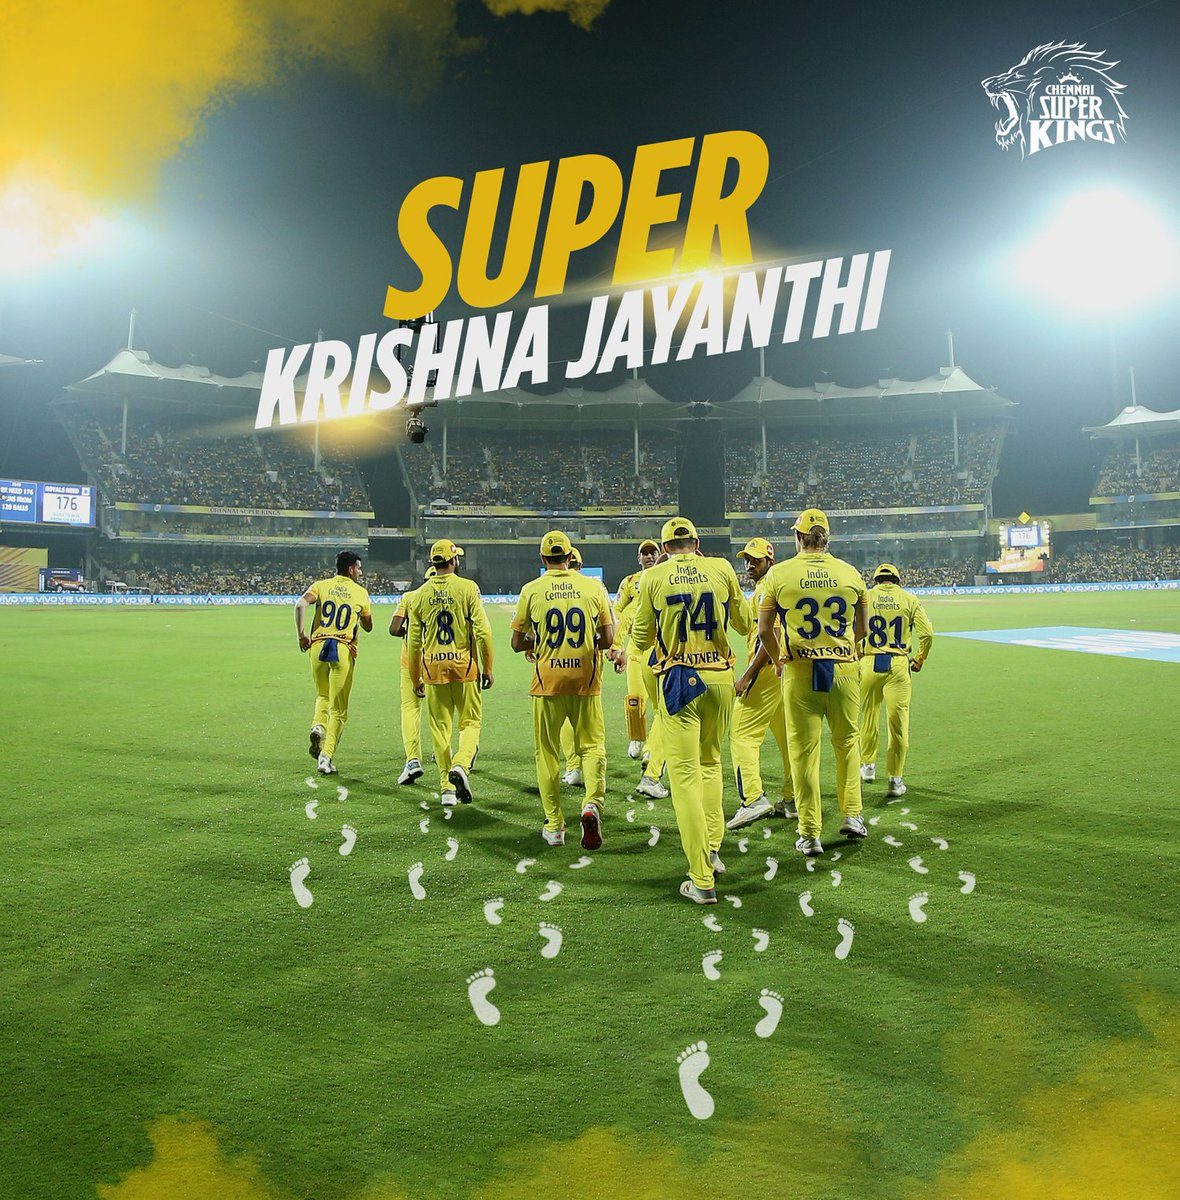 May this #KrishnaJayanthi bring only the bestest into your super homes. Goin' den, go in den! #WhistlePodu<br>http://pic.twitter.com/9Cer8MxgGY